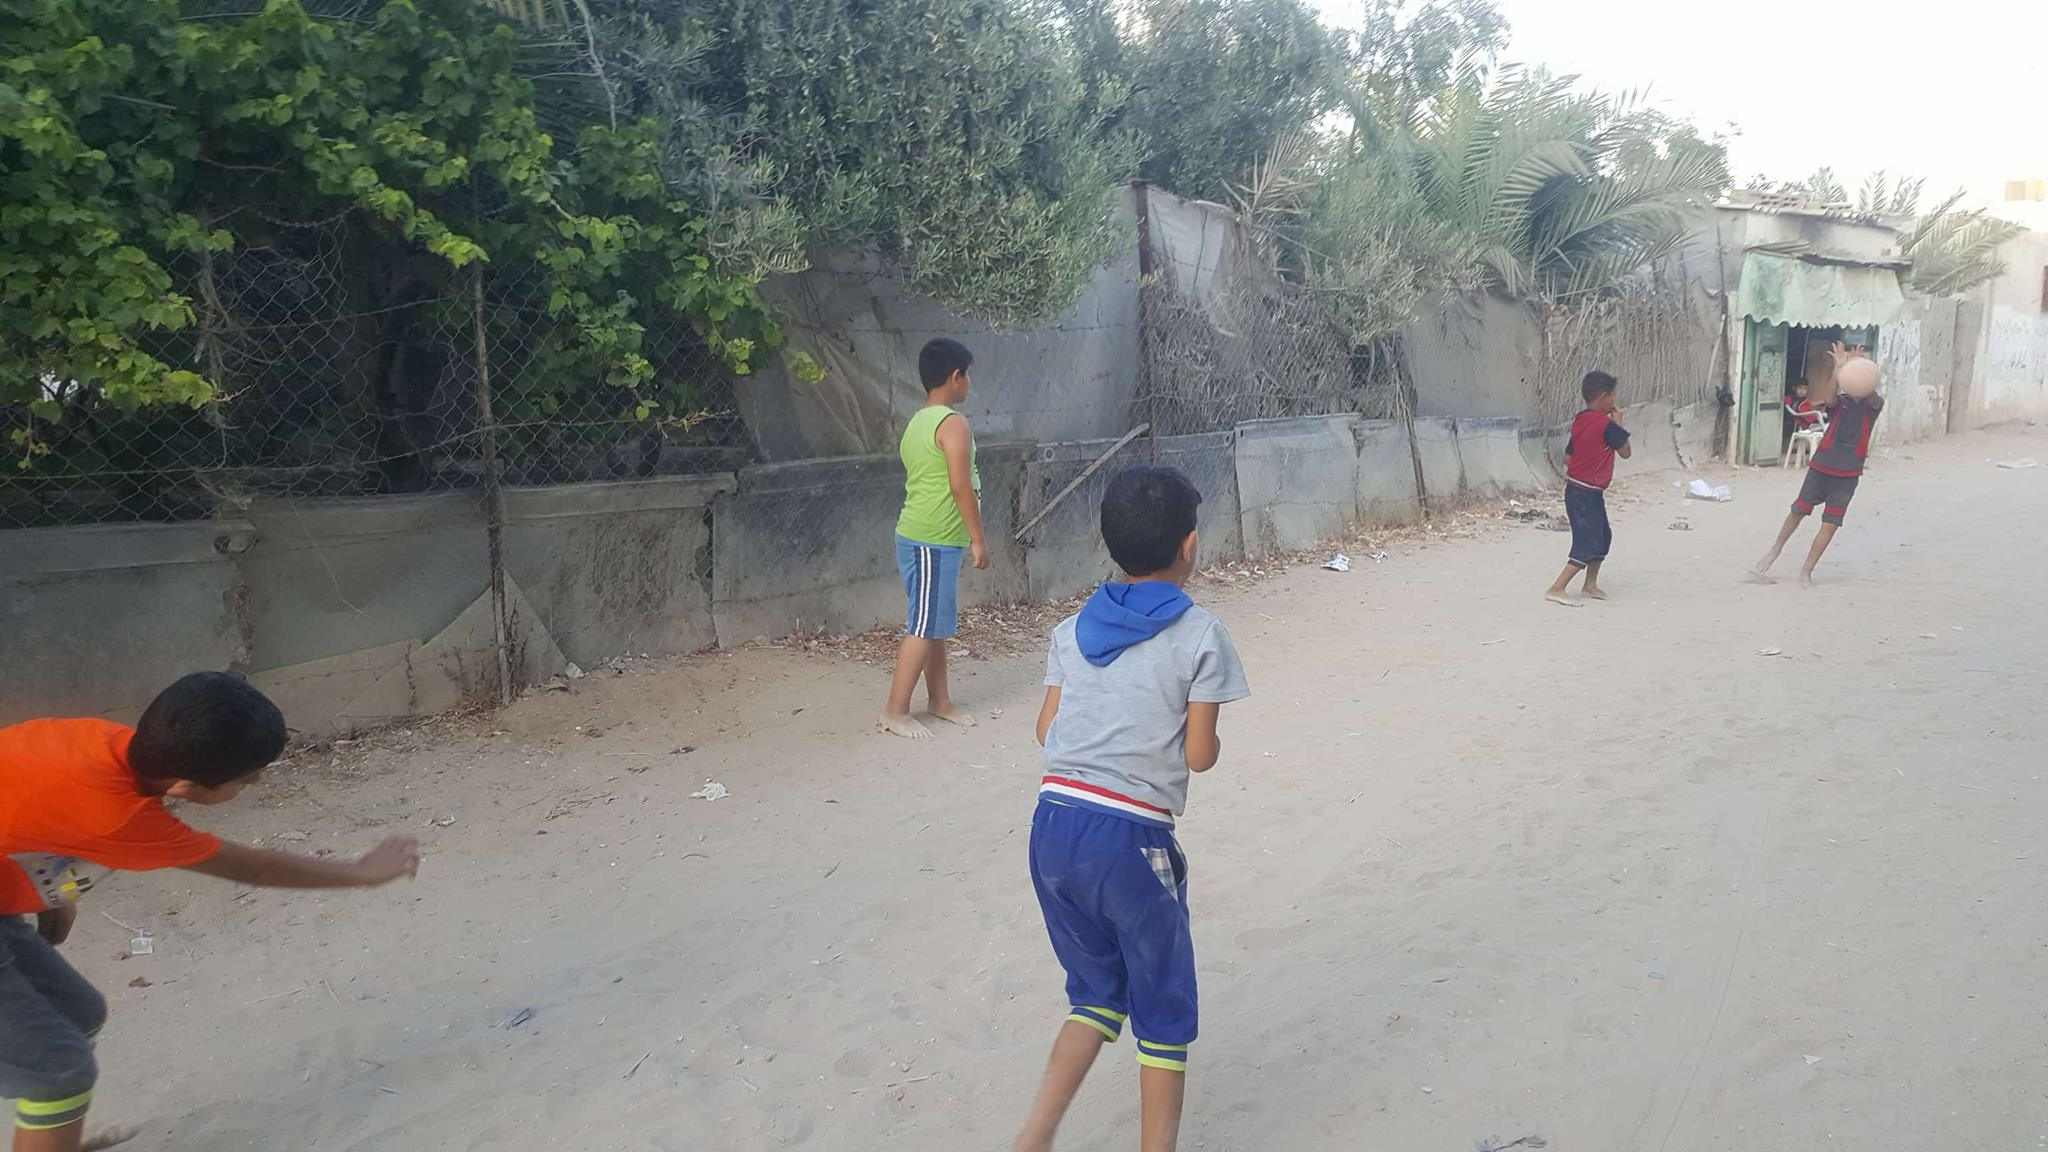 Boys playing in the street